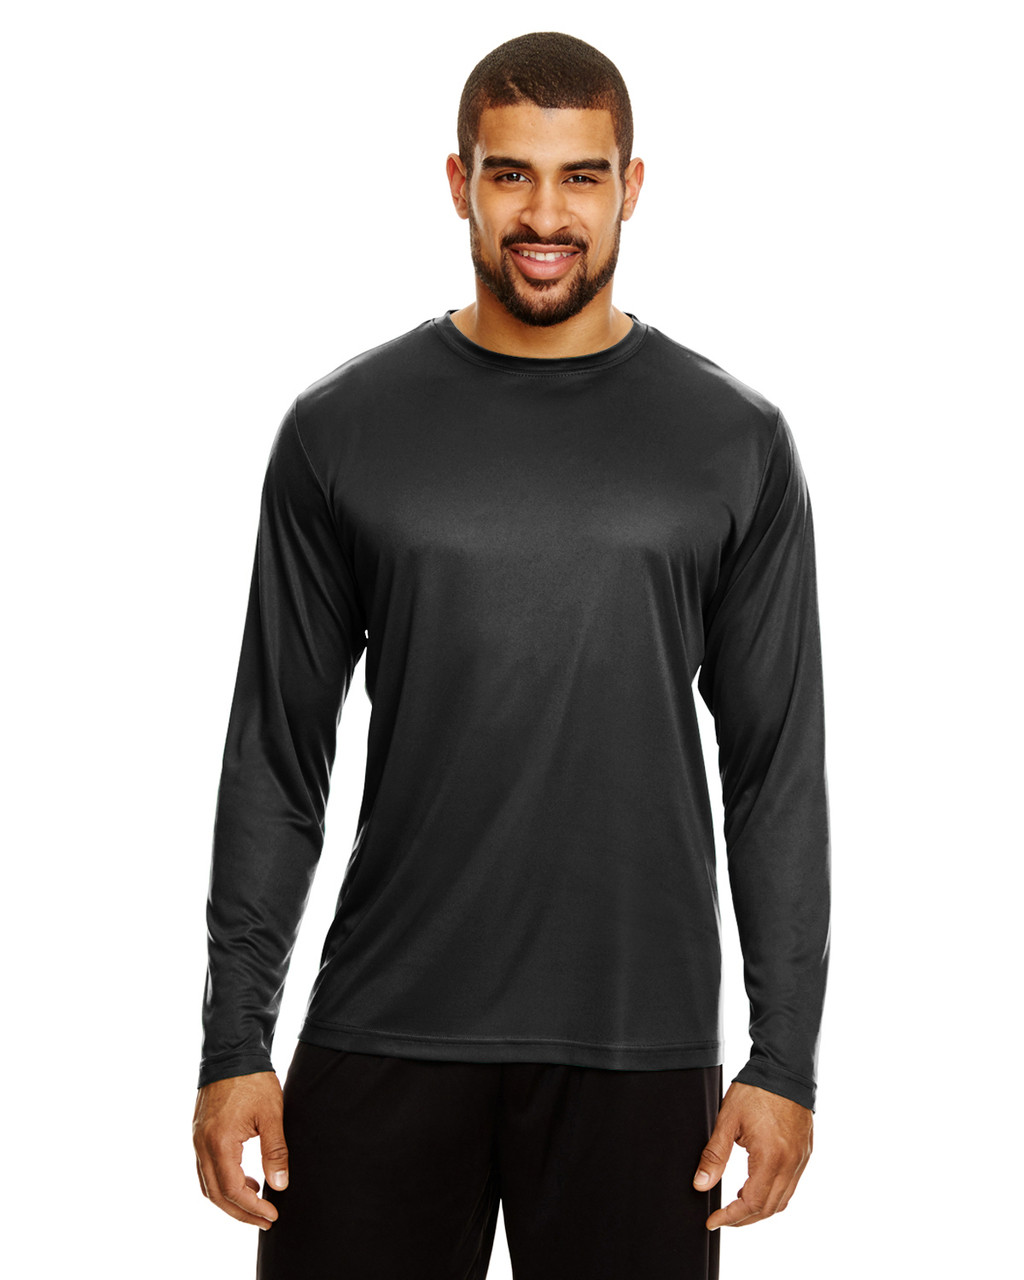 Black - TT11L Team 365 Men's Zone Performance Long Sleeve T-Shirt | BlankClothing.ca